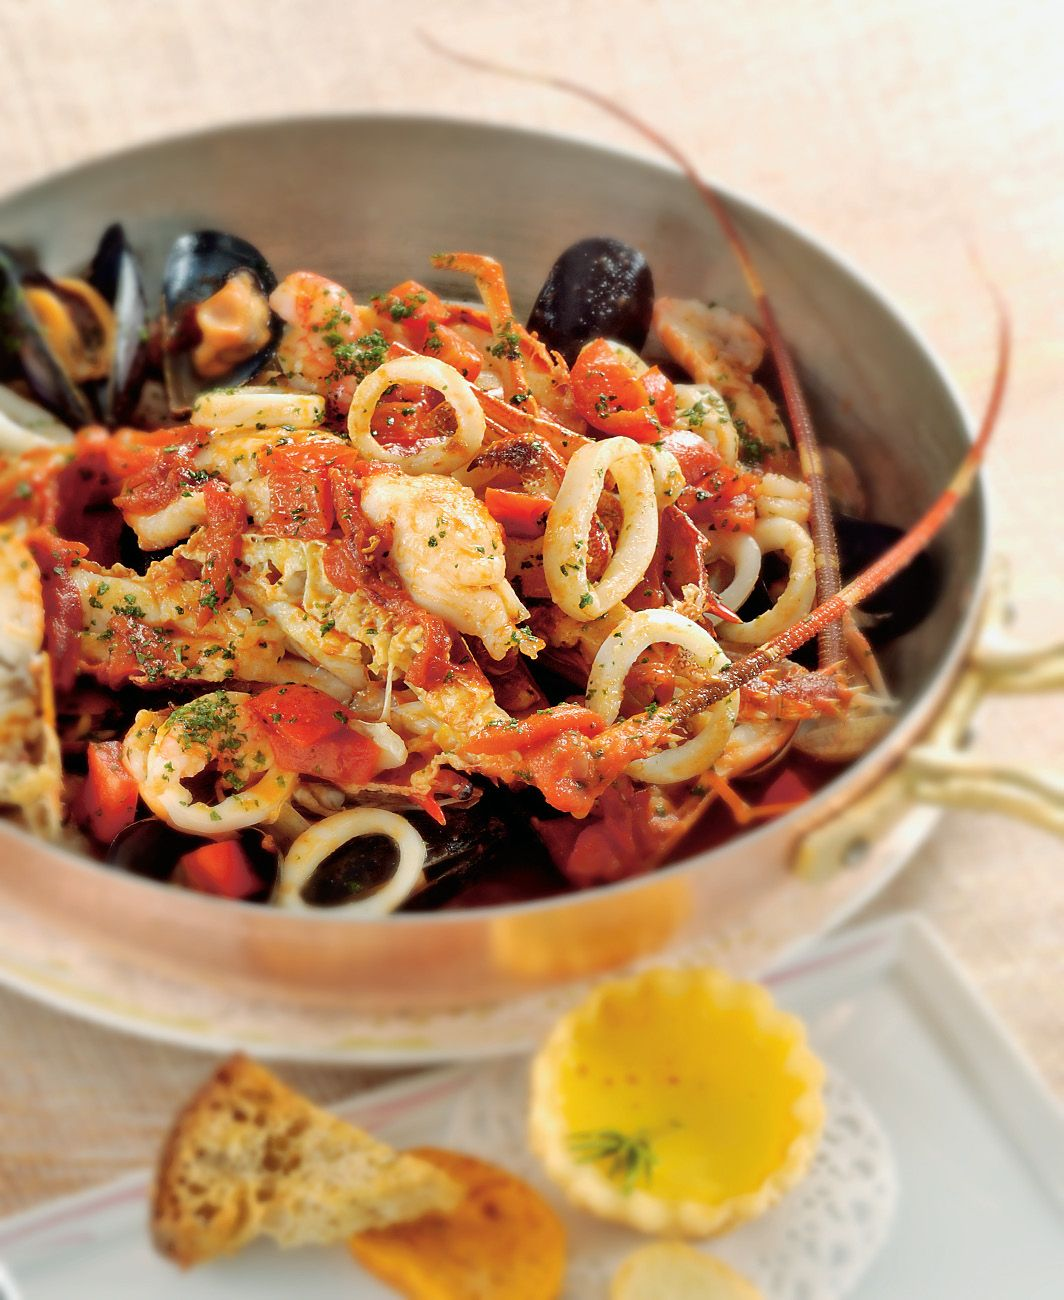 Photo of Zuppa di crostacei e frutti di mare